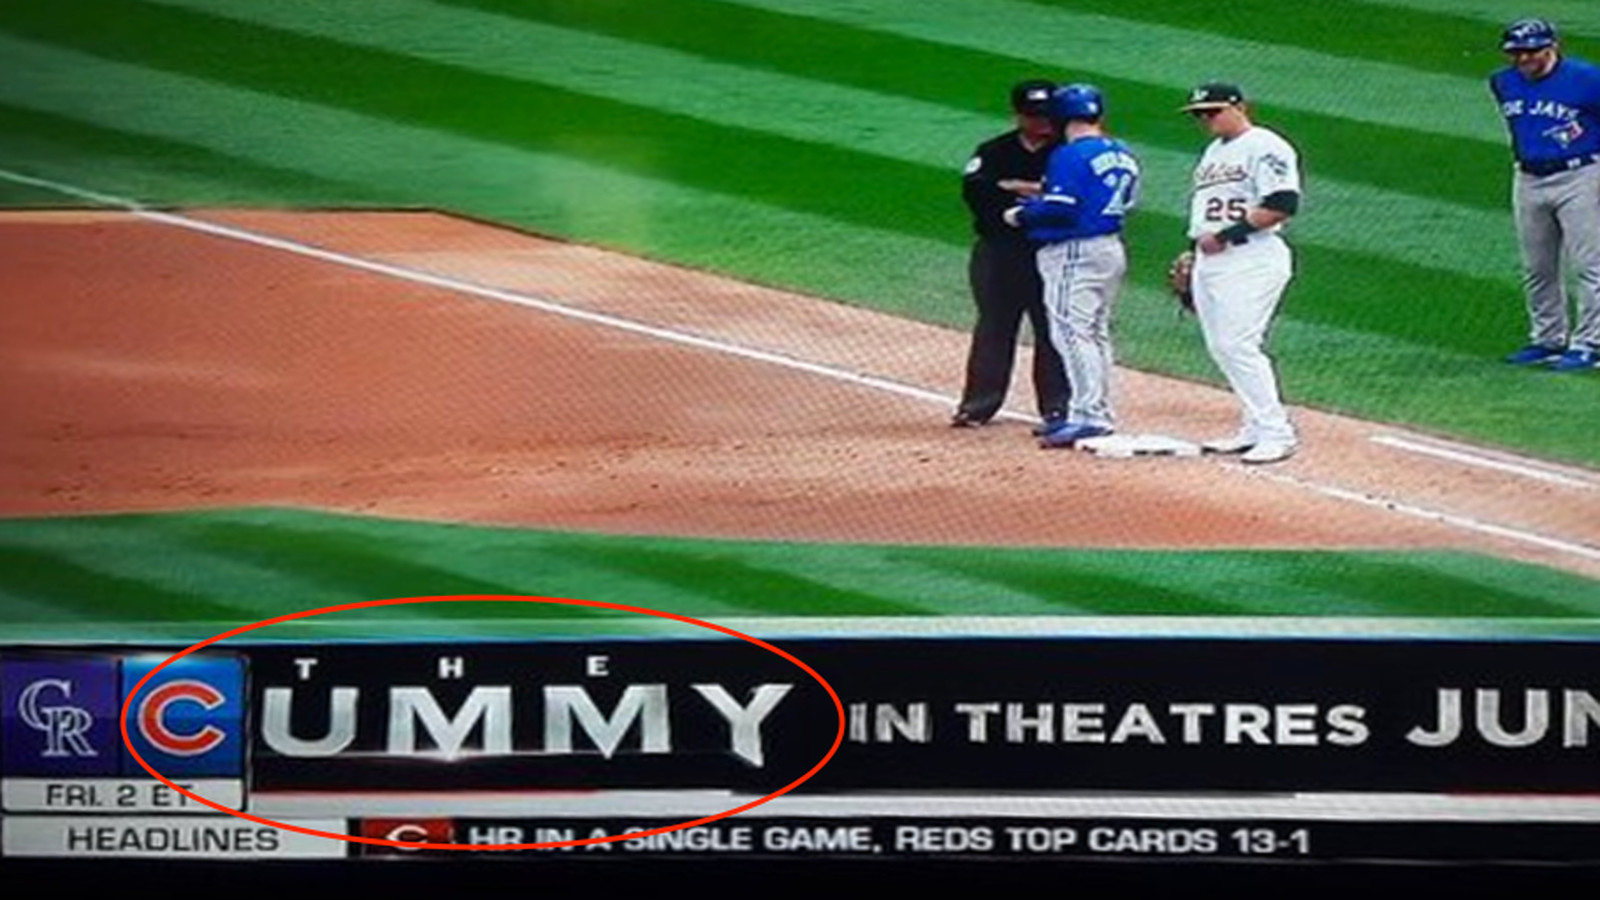 MLB Network graphic inadvertently creates a NSFW title for ...